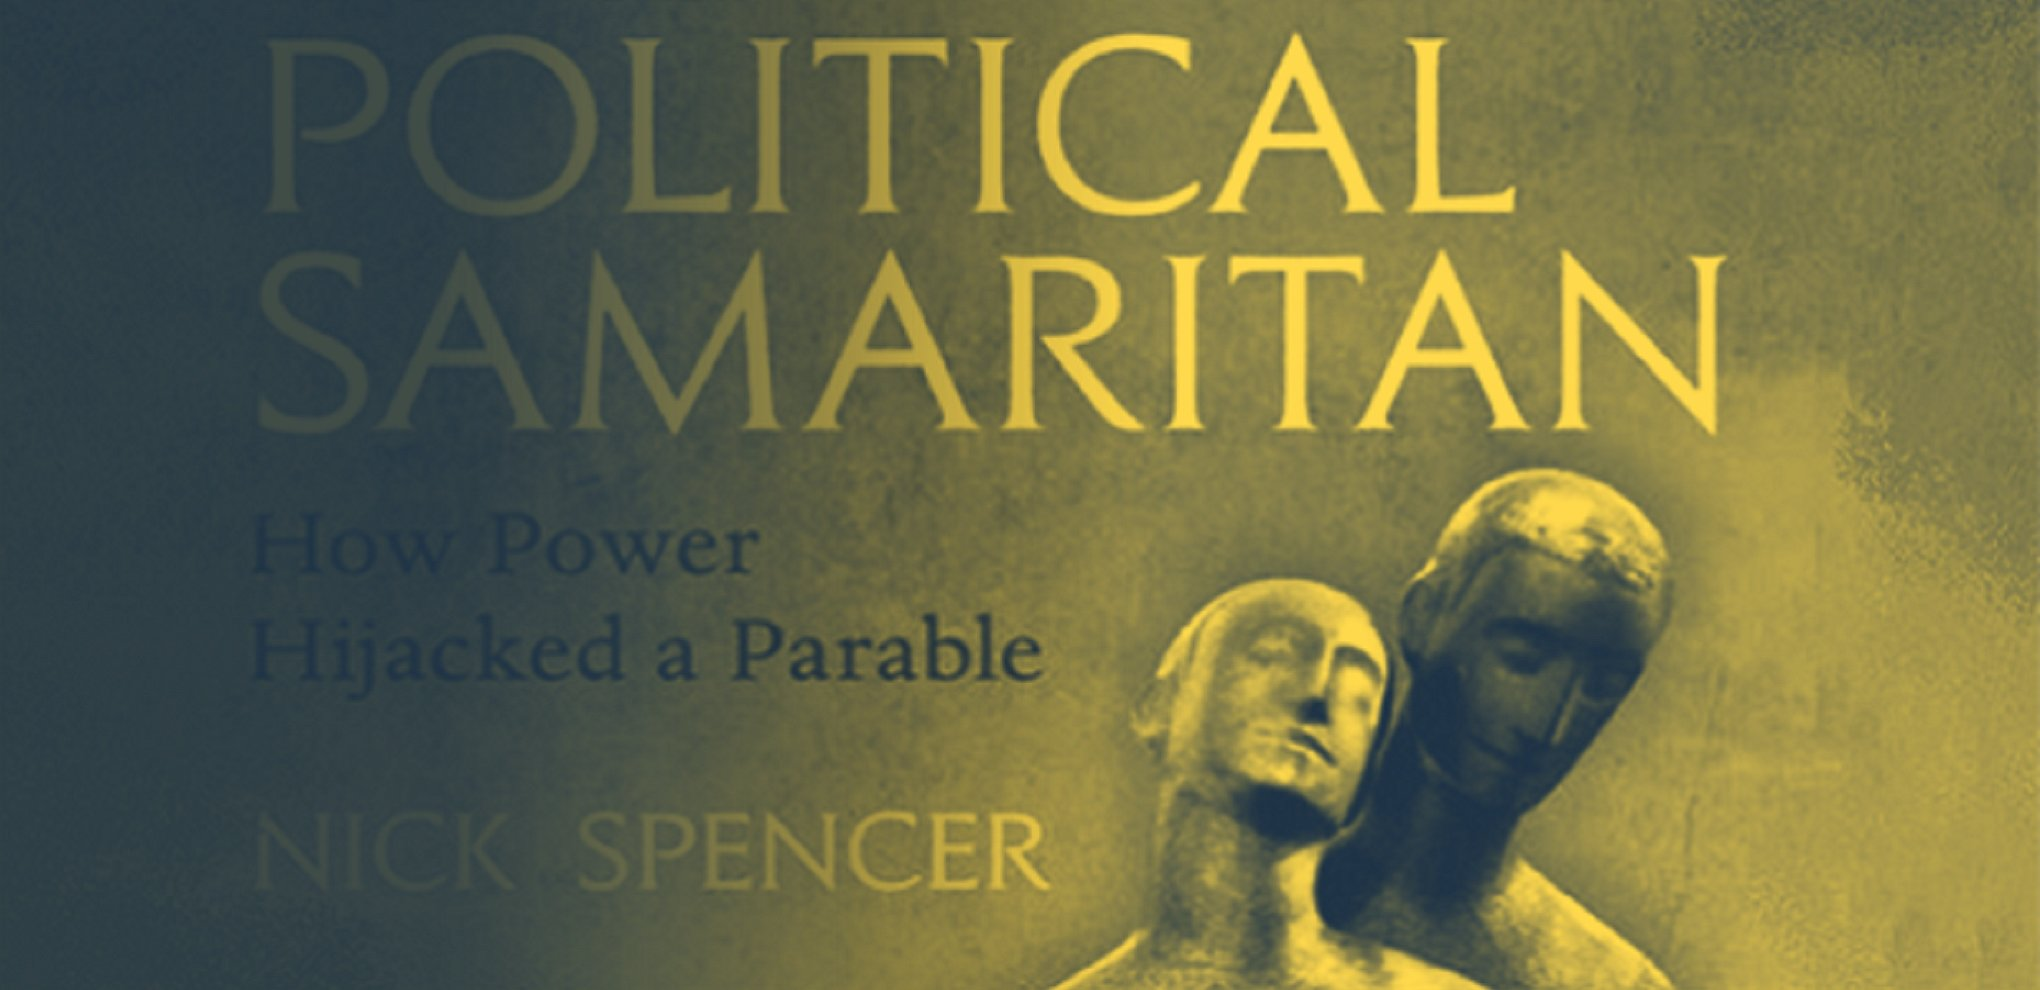 Nick Spencer's new book explores how the perennially popular story of the Good Samaritan is deployed in supposedly secular politics.